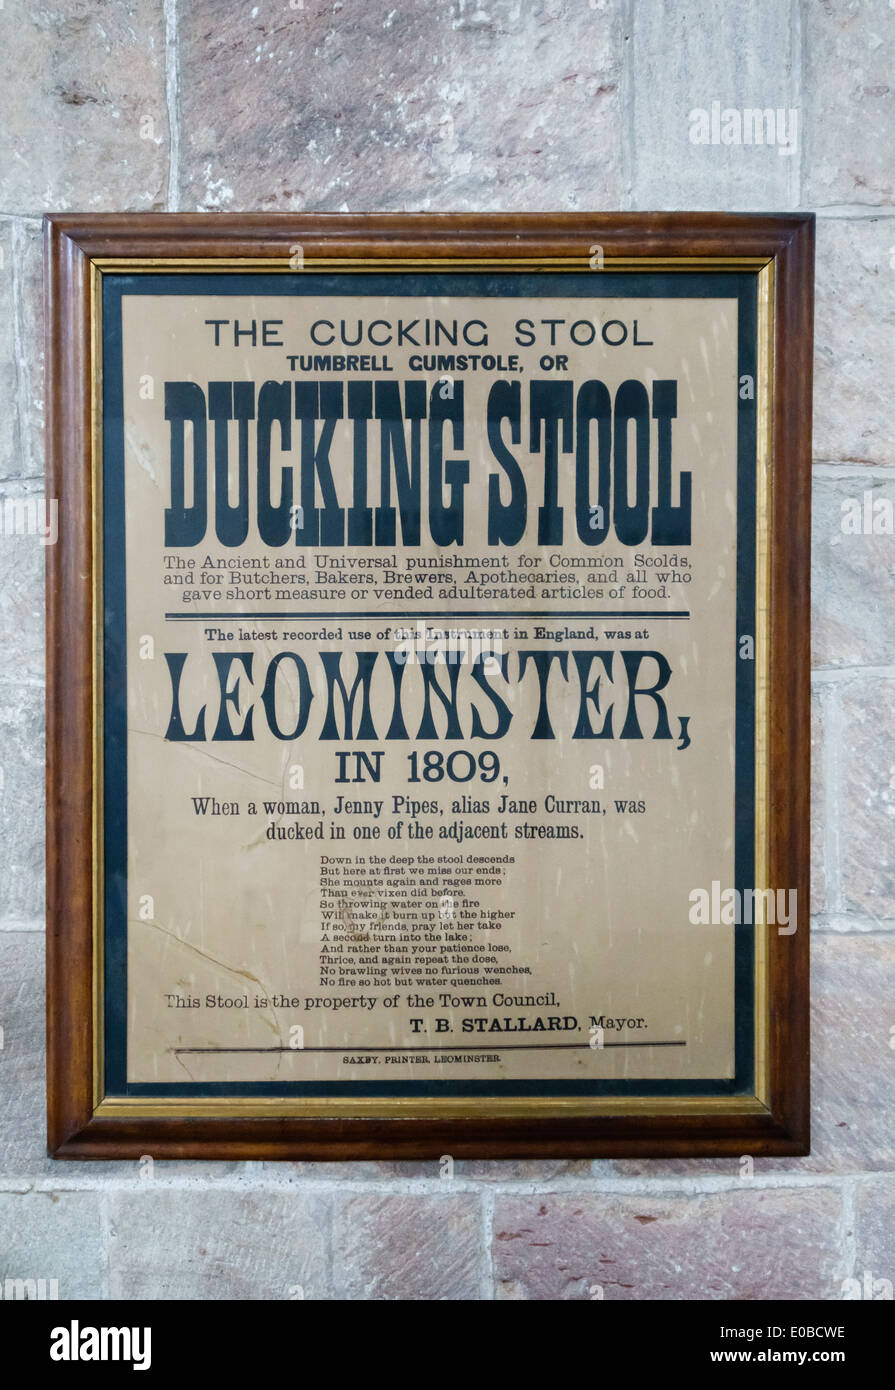 Herefordshire, UK. Sign in Leominster Priory Church describing the last public use of a ducking stool (or cucking stool) in England, in 1809 - Stock Image